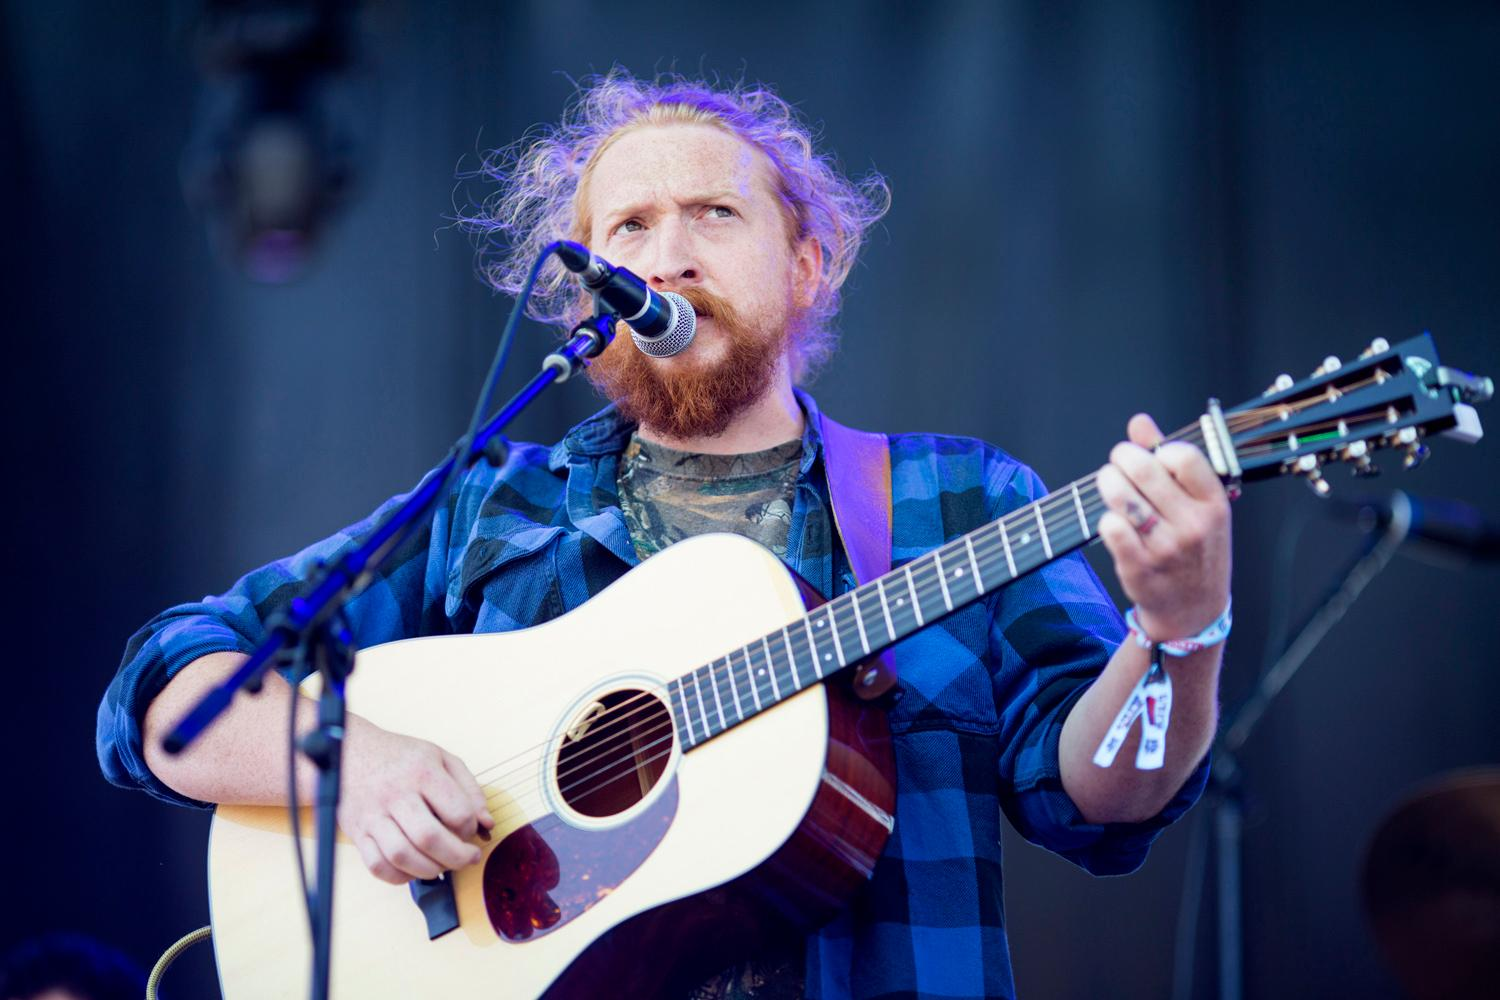 Tyler Childers performs at the second day of the annual Sasquatch! Music Festival. The three-day festival runs throughout the Memorial Day Weekend, from May 25-27, 2018. (Sy Bean / Seattle Refined)